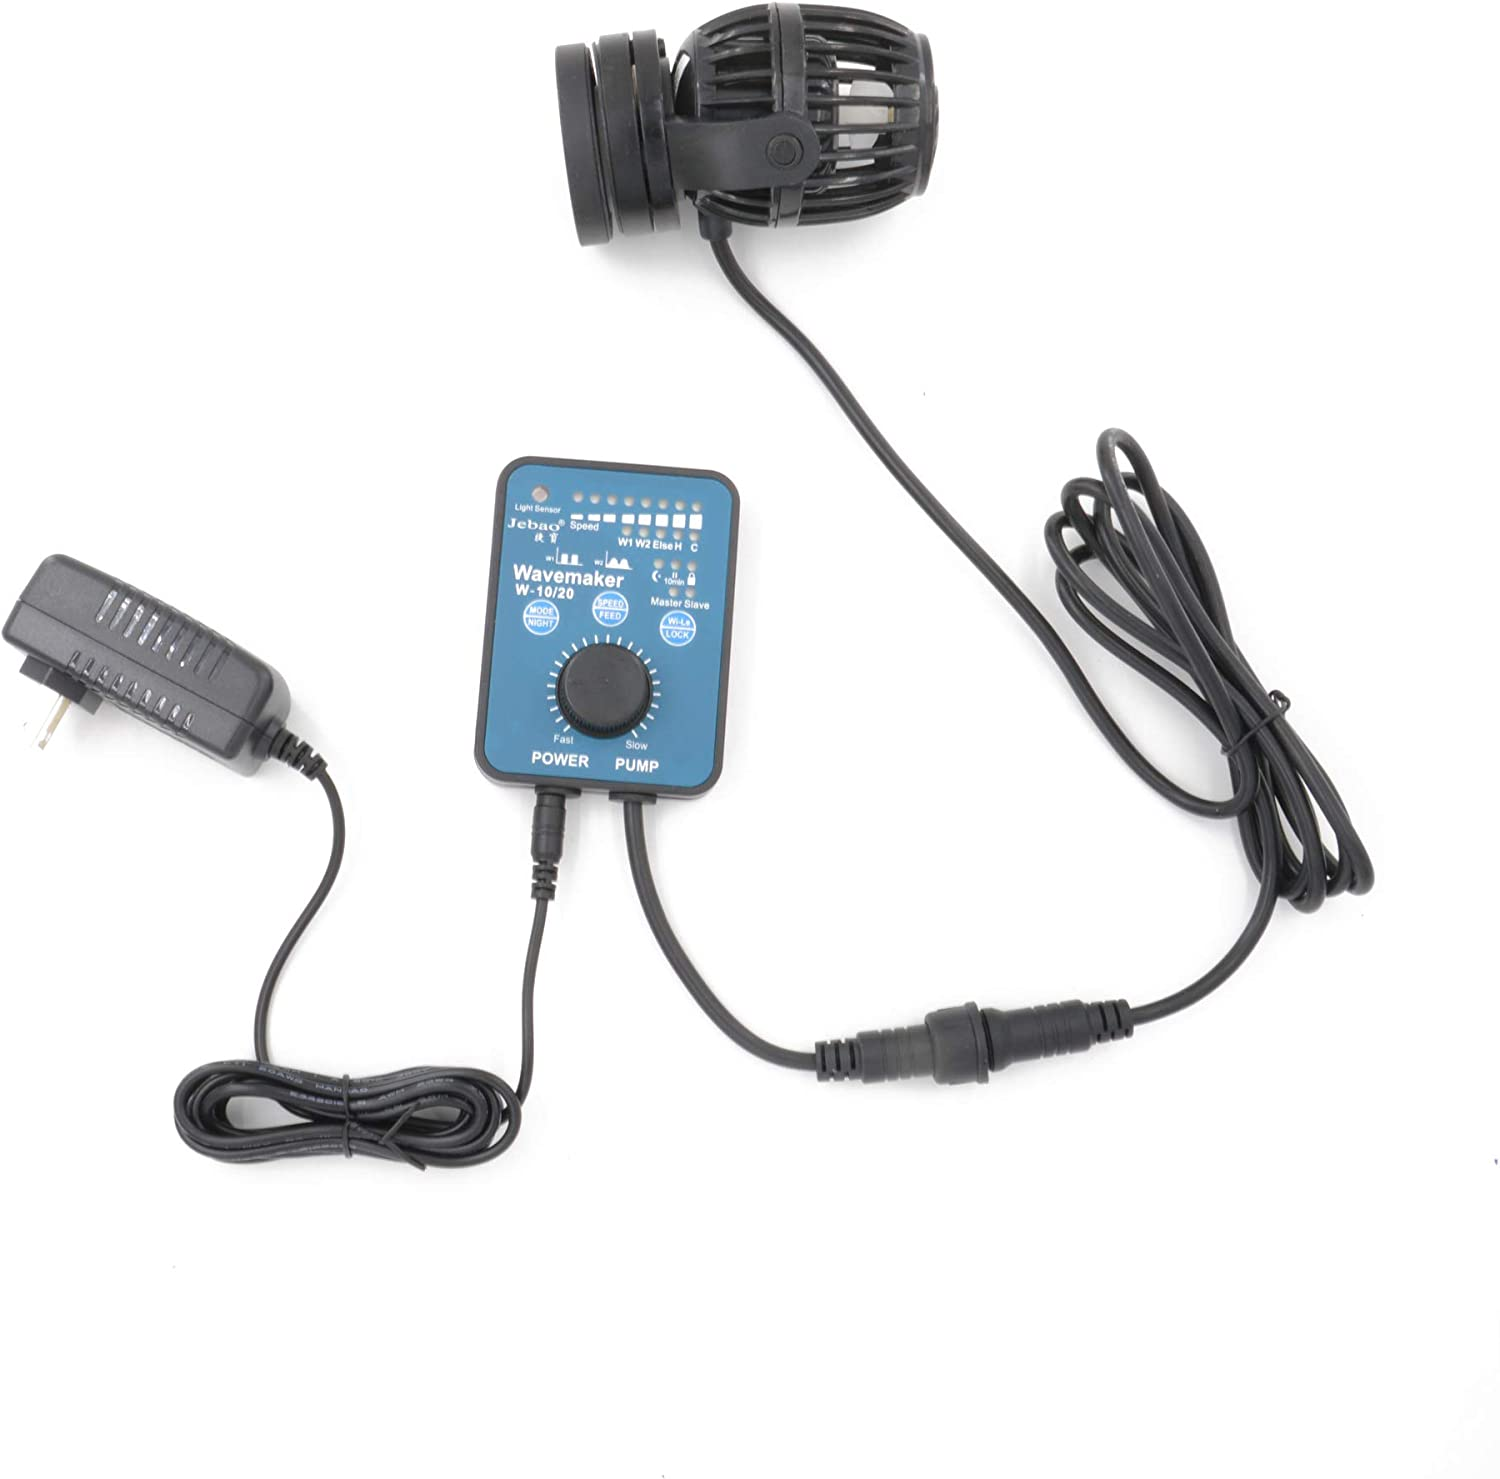 Jebao PP Series Wavemaker with Controller